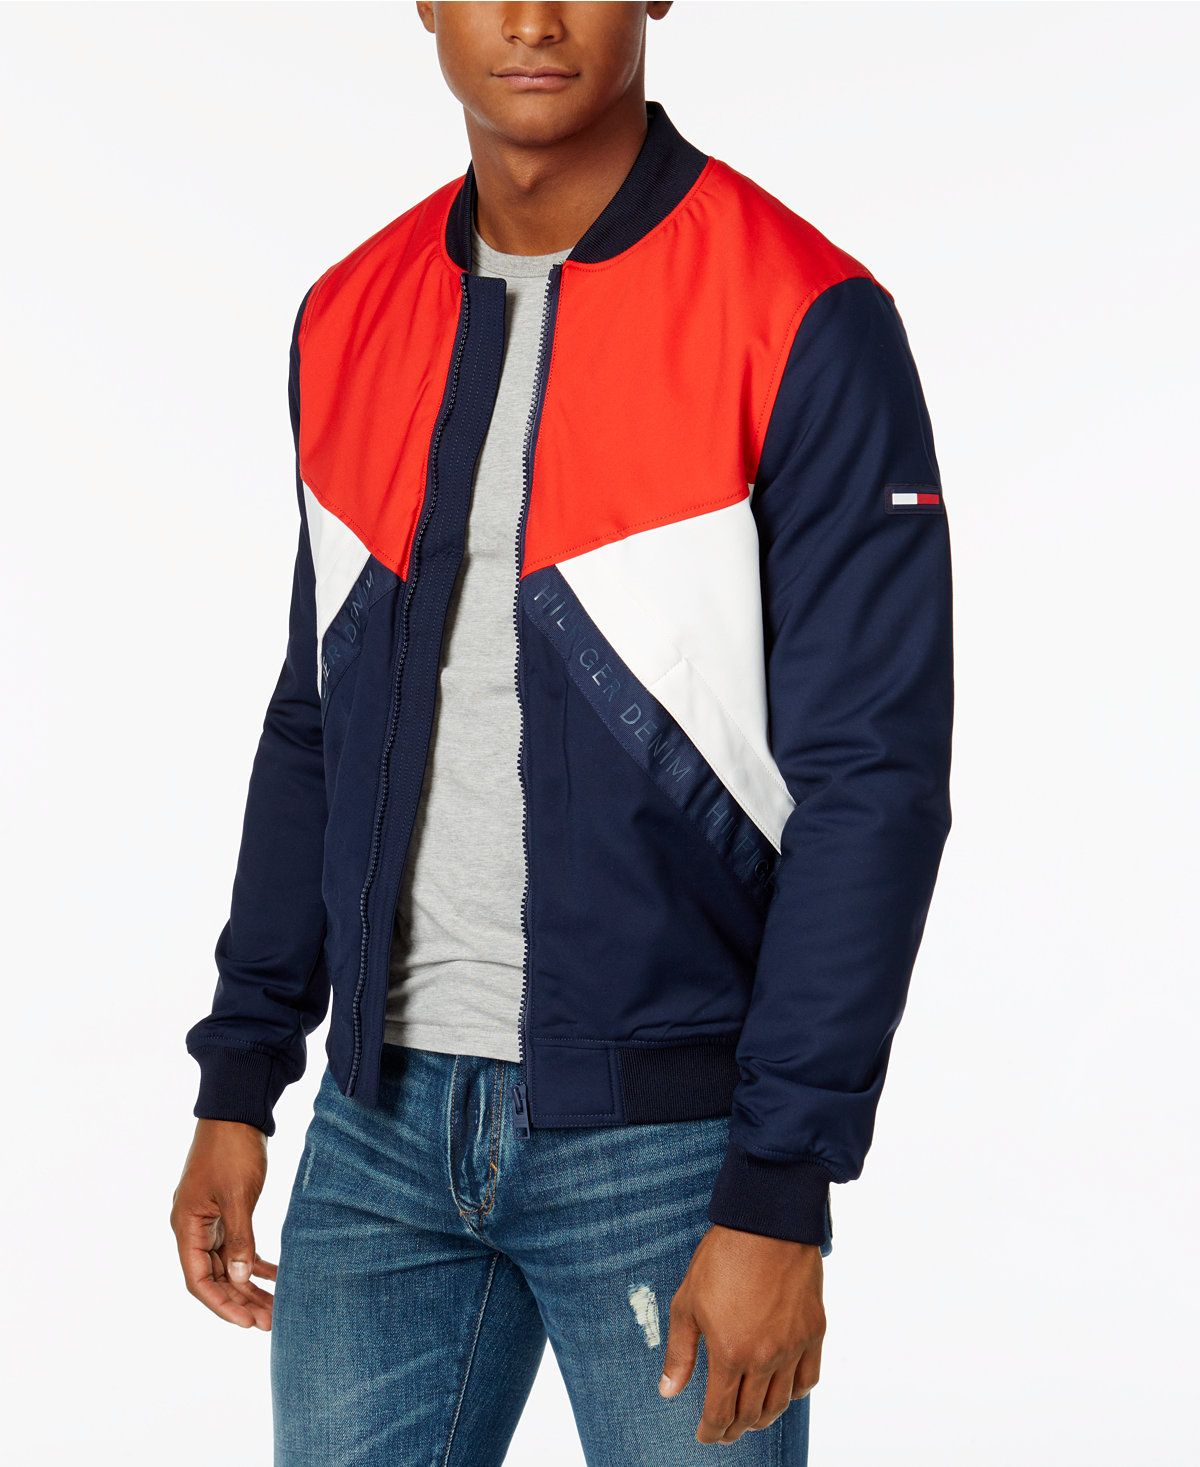 a2b55a82123a Tommy Hilfiger Men s Colorblocked Logo Bomber Jacket - Coats   Jackets - Men  - Macy s